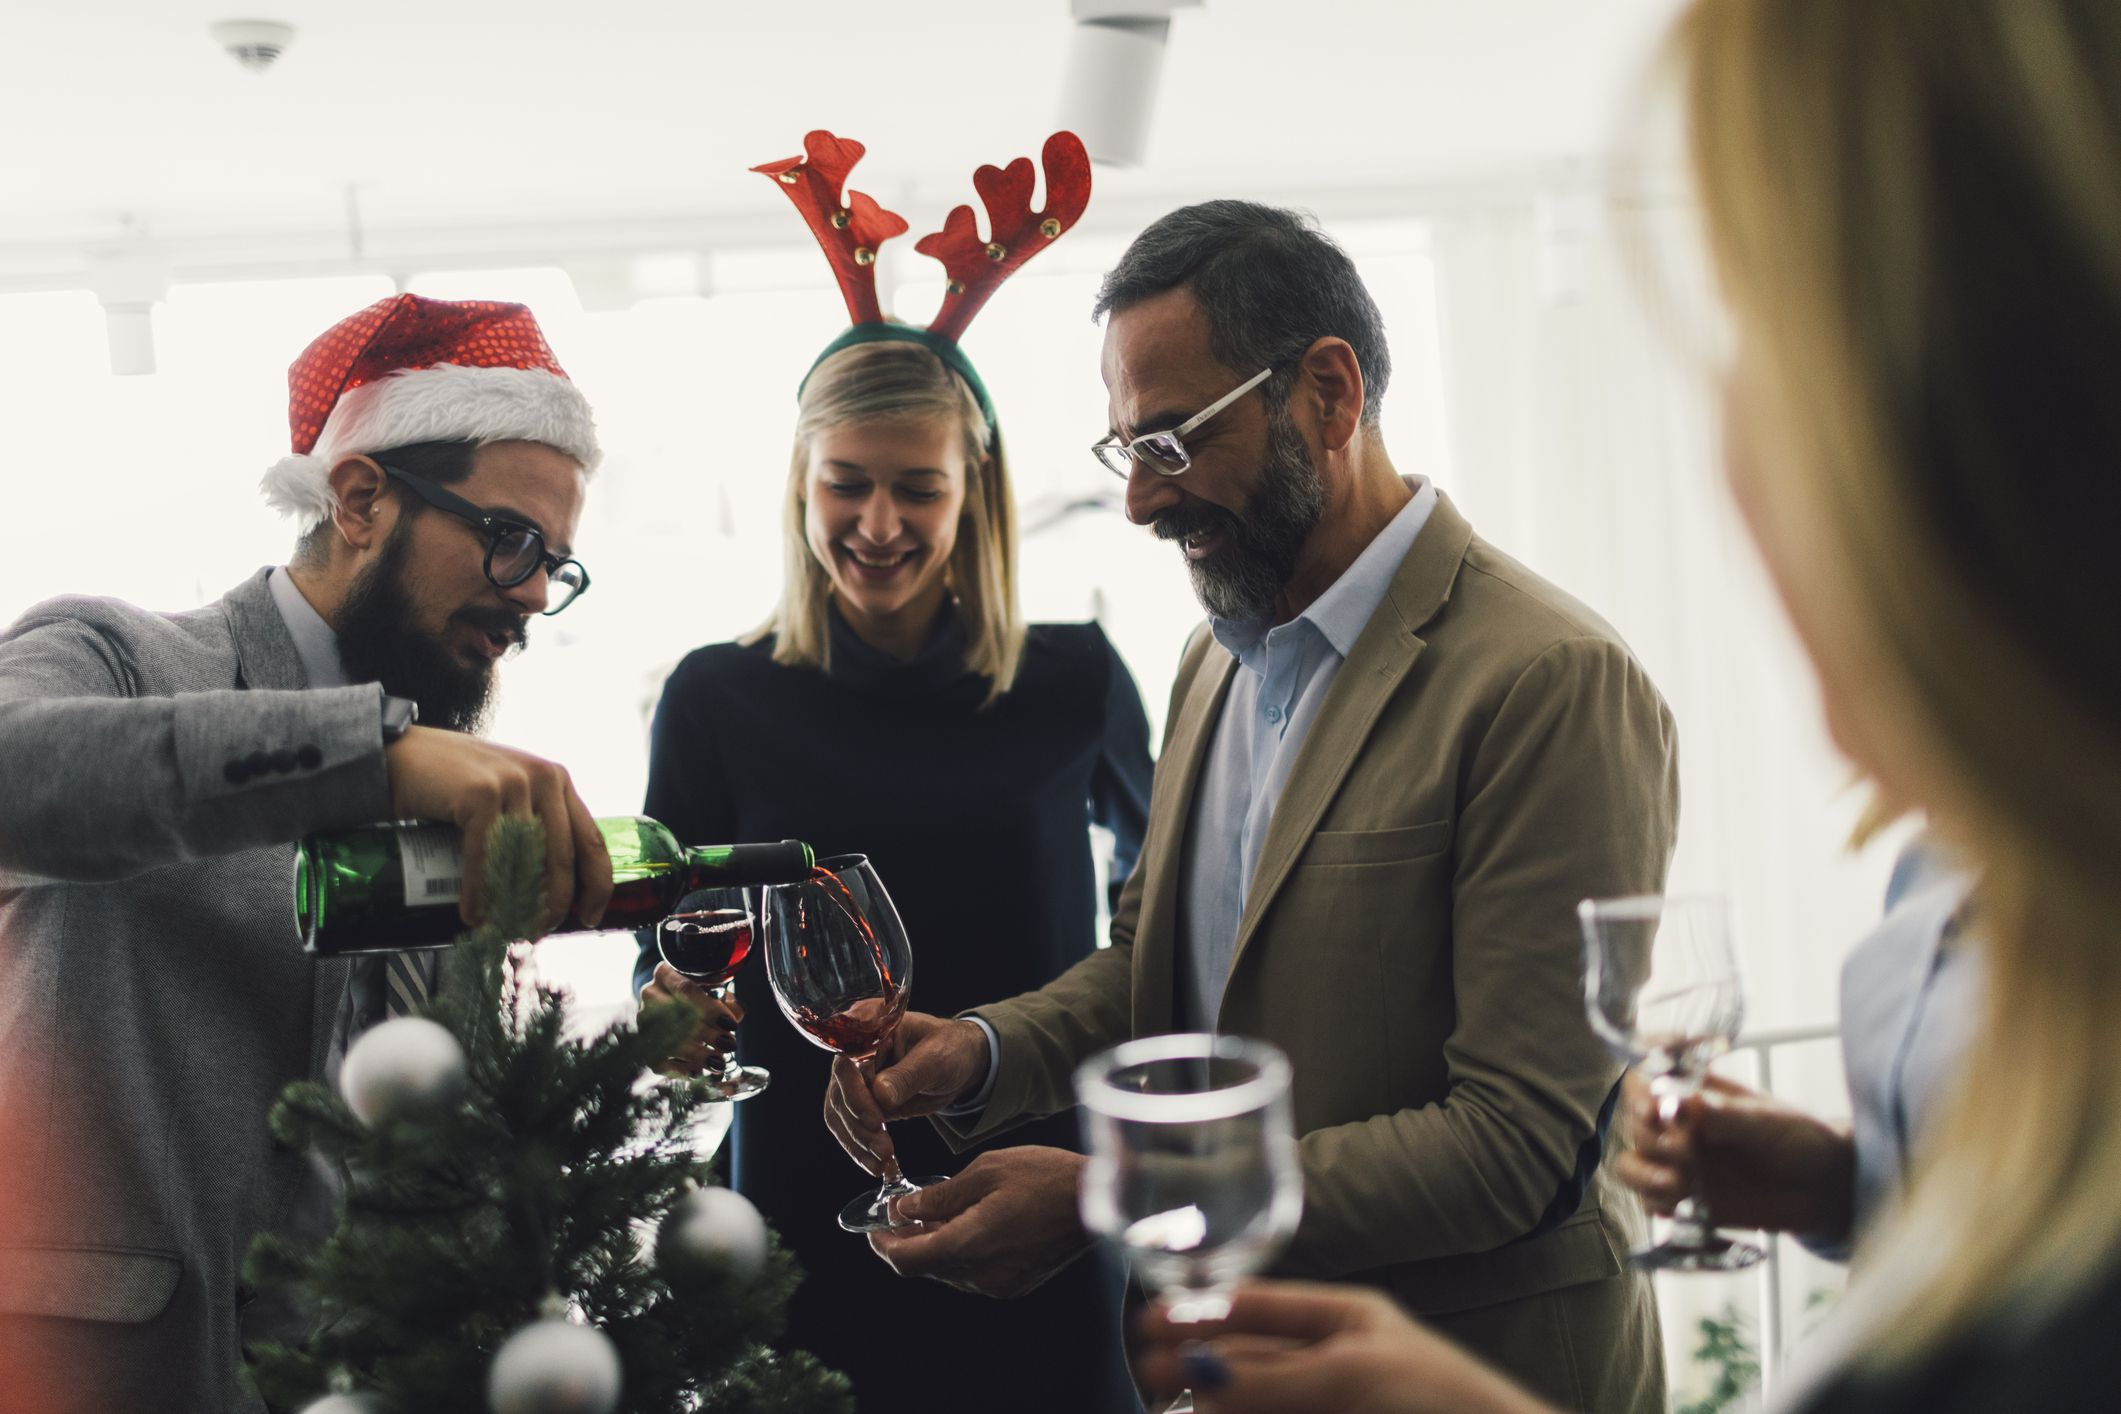 10 fice Party Etiquette Tips for the Holidays